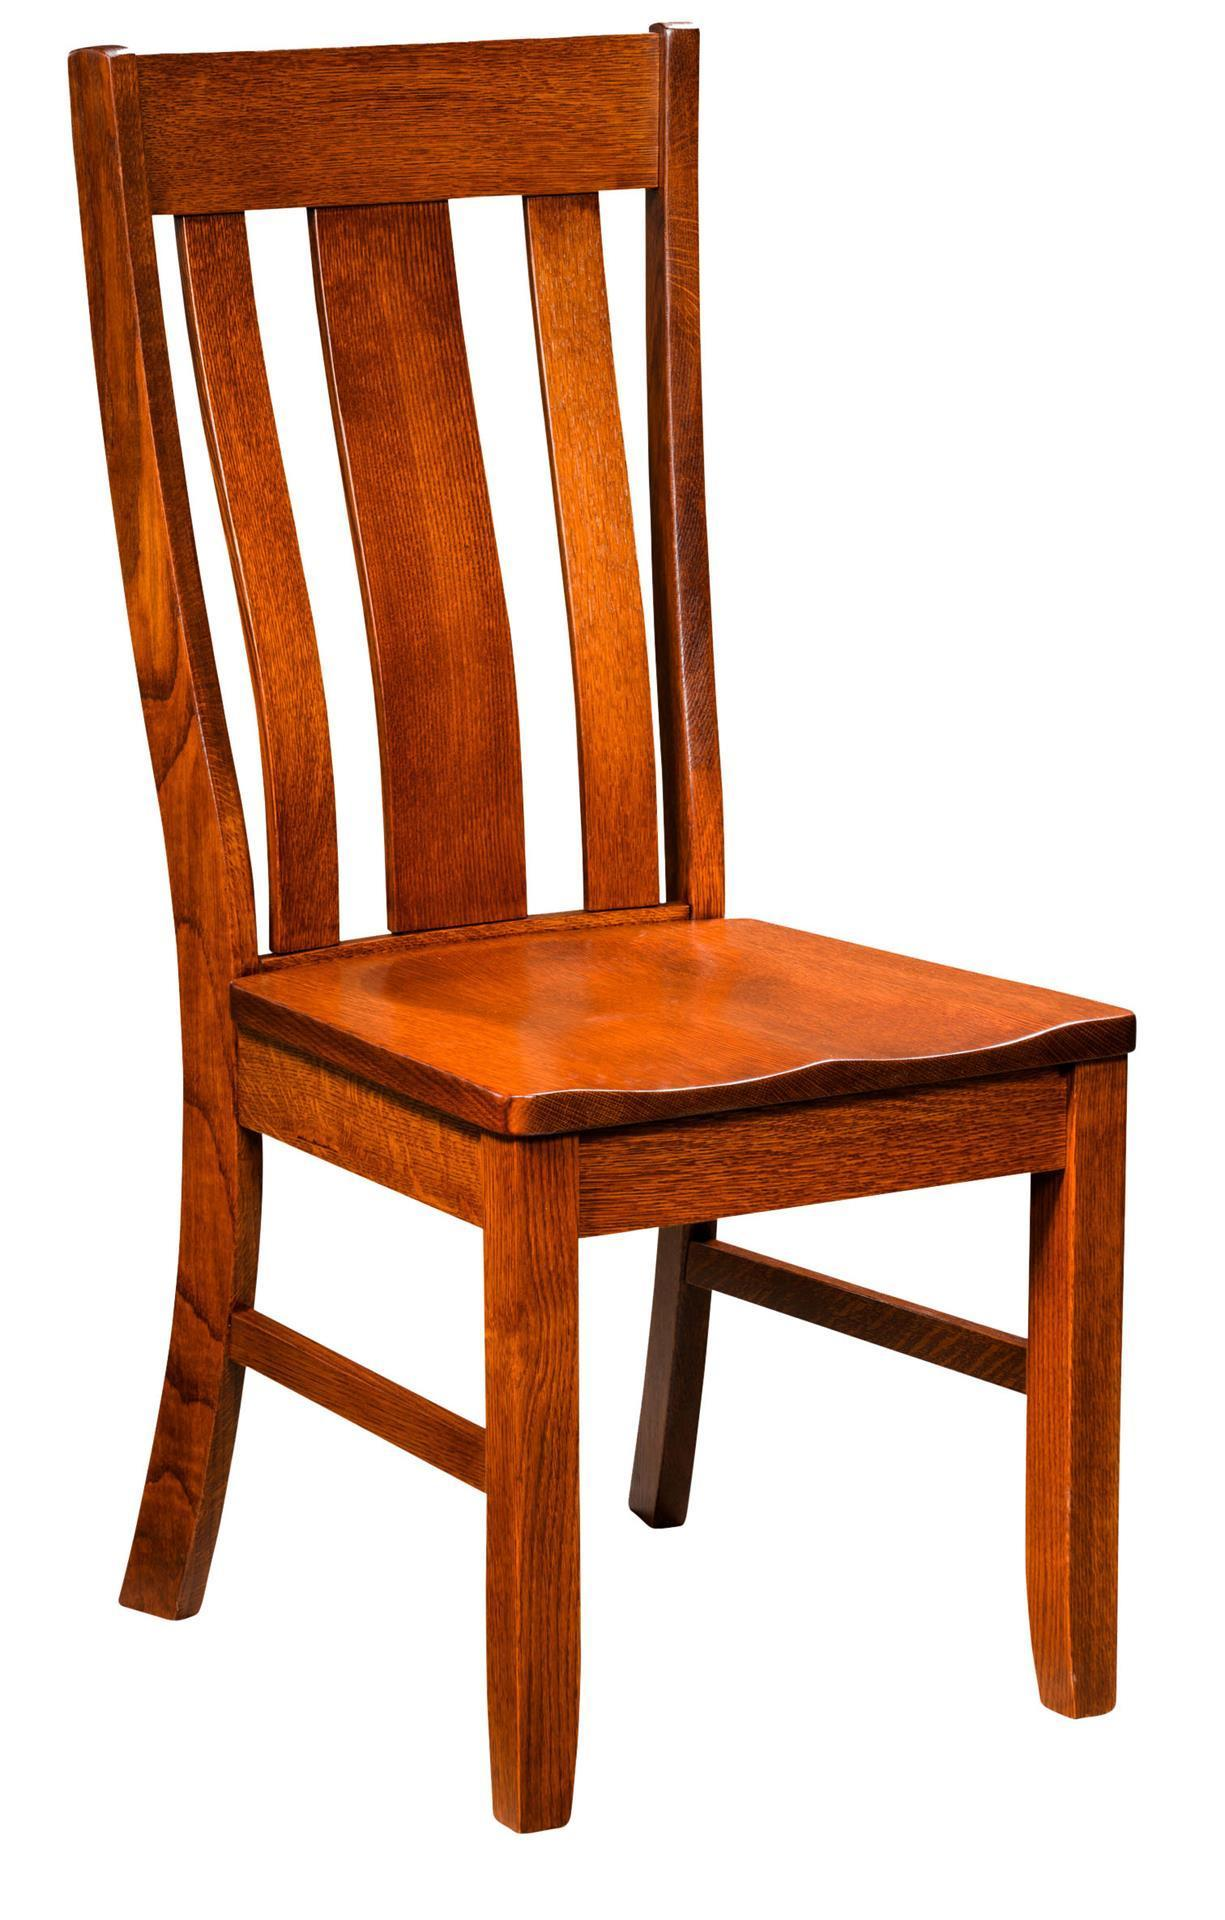 amish dining room chairs   Larson Dining Chair from DutchCrafters Amish Furniture